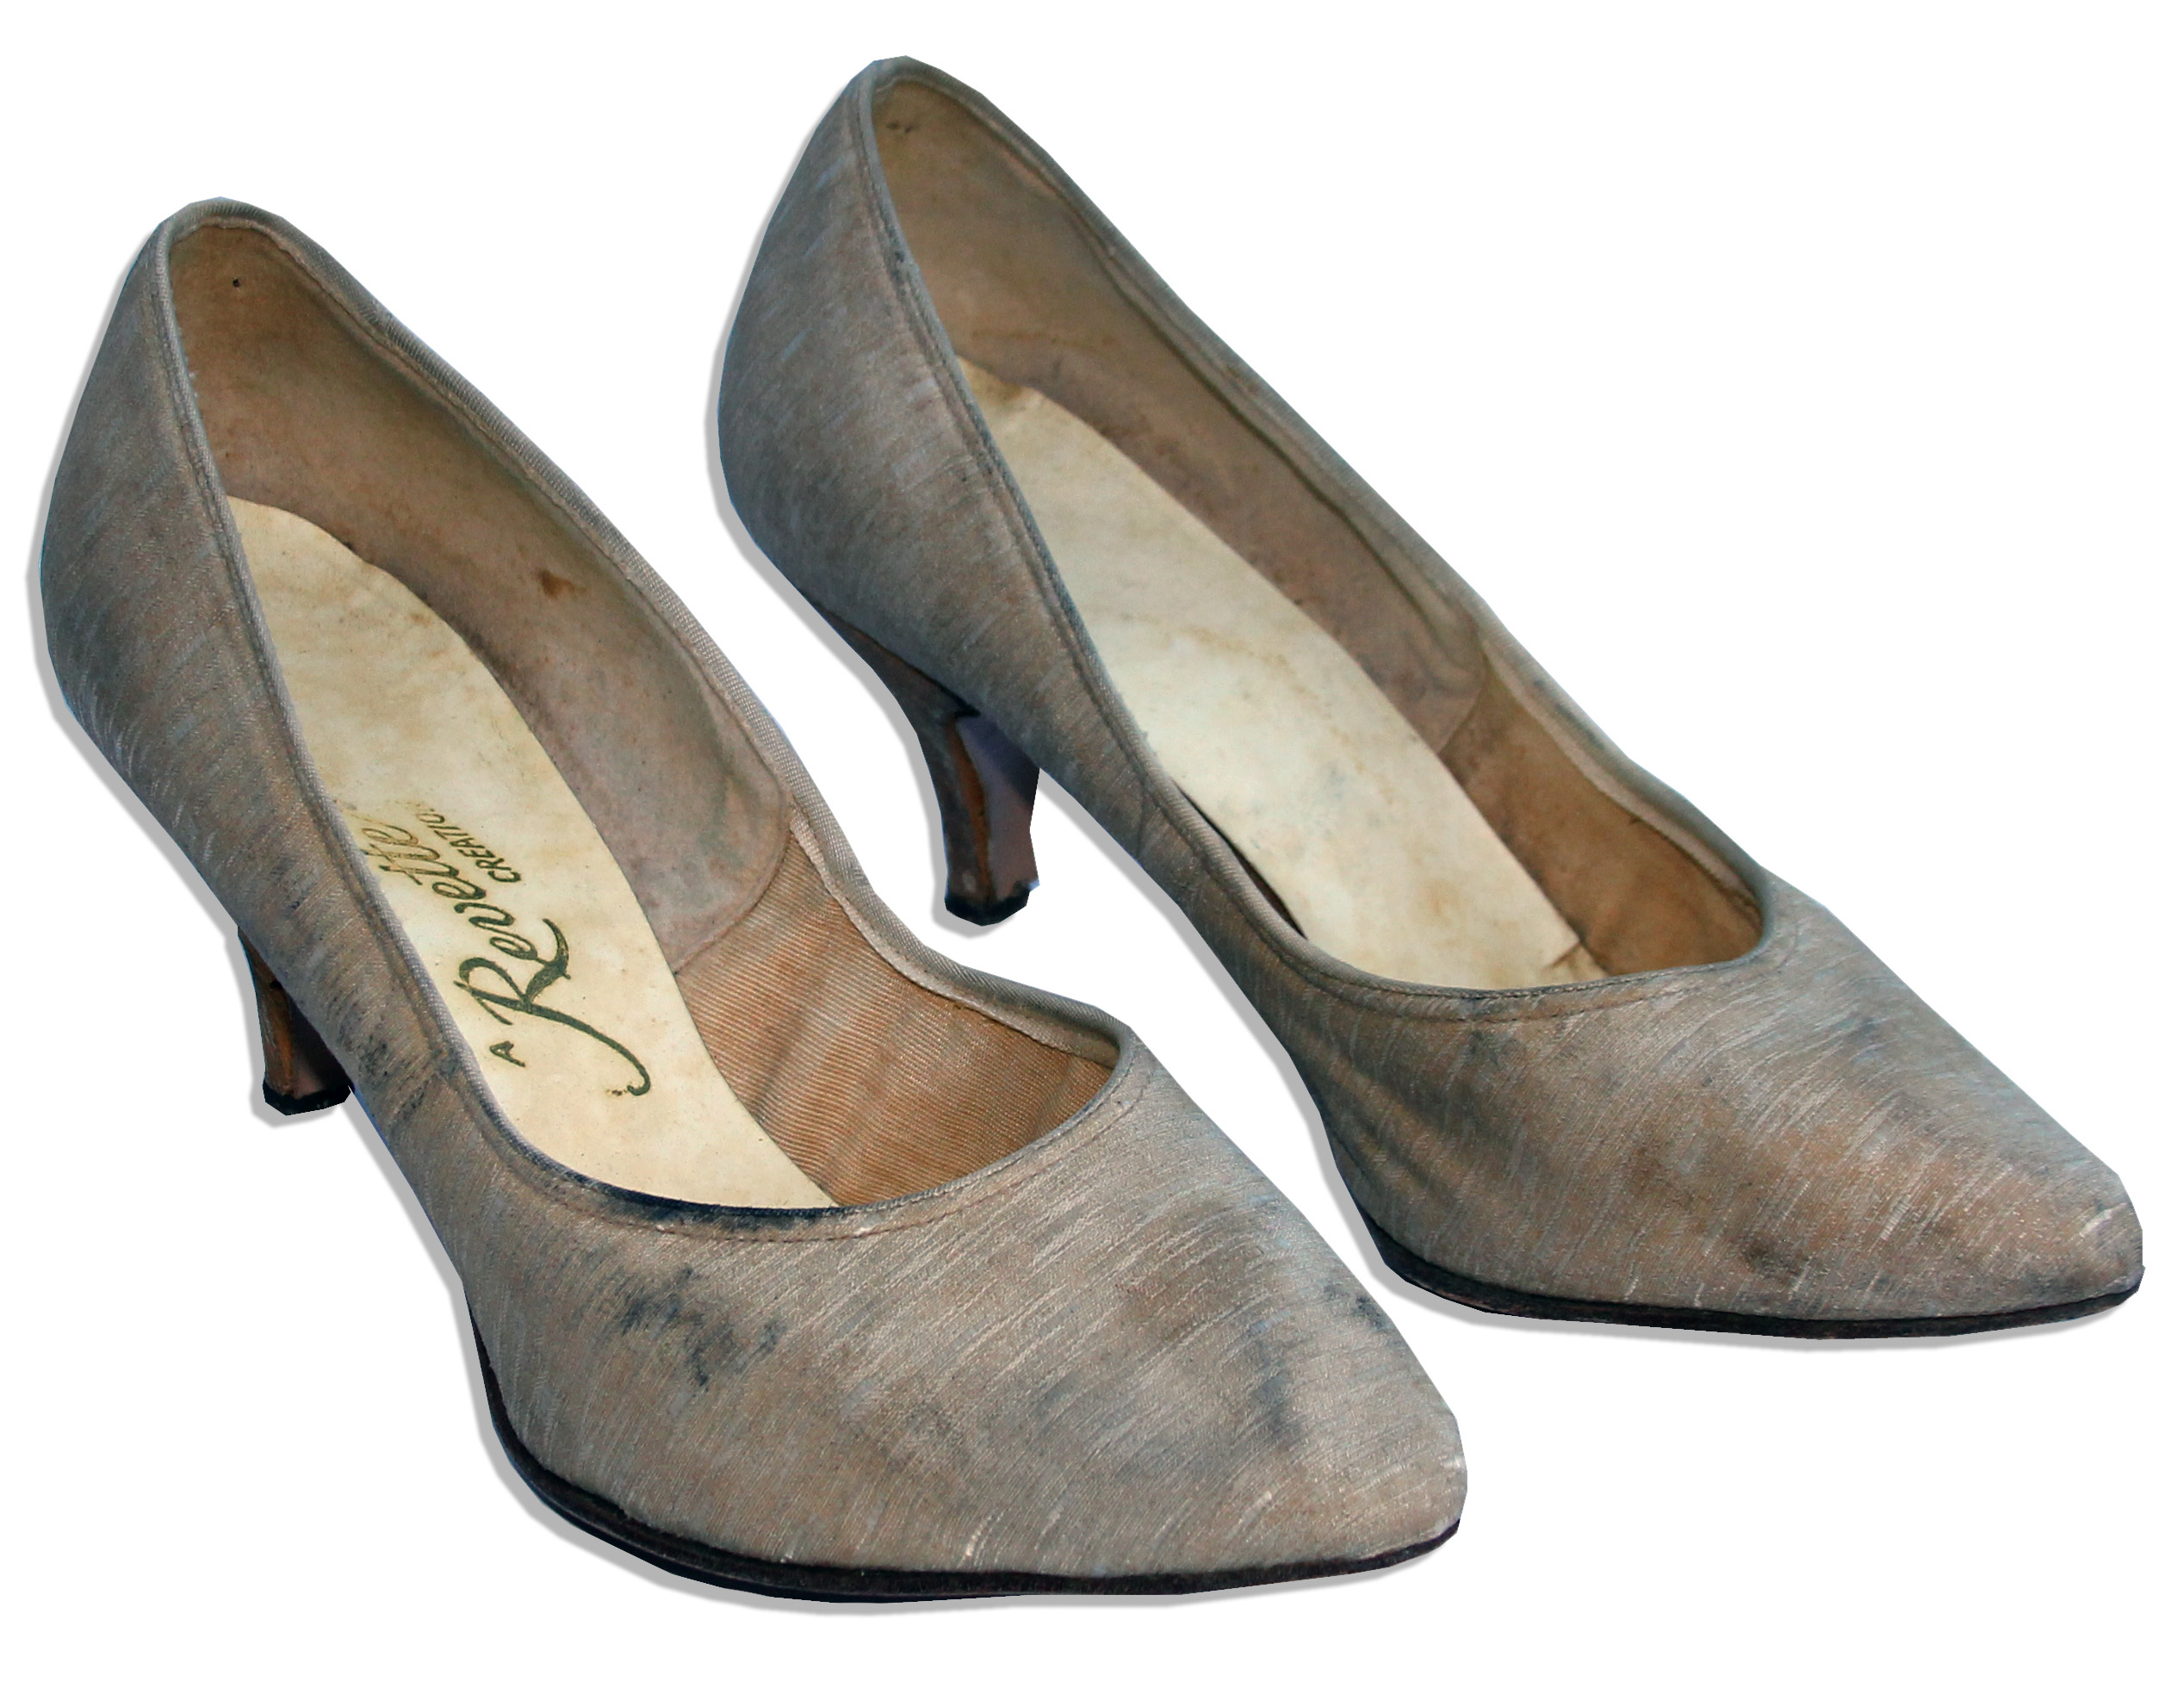 Jackie Kennedy Personally Owned Worn High Heel Shoes By Revette